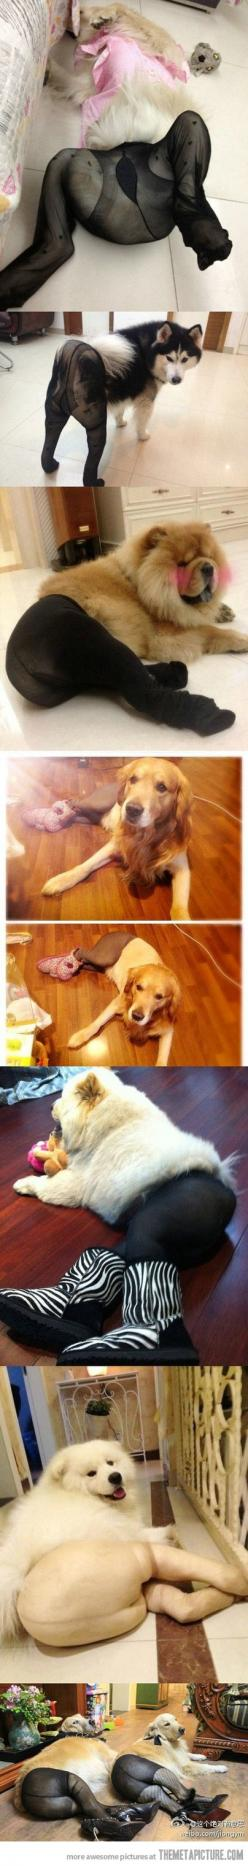 Pantyhose on dogs crack me up...: Giggle, Cant, Thought, Poor Dogs, So Funny, Animal